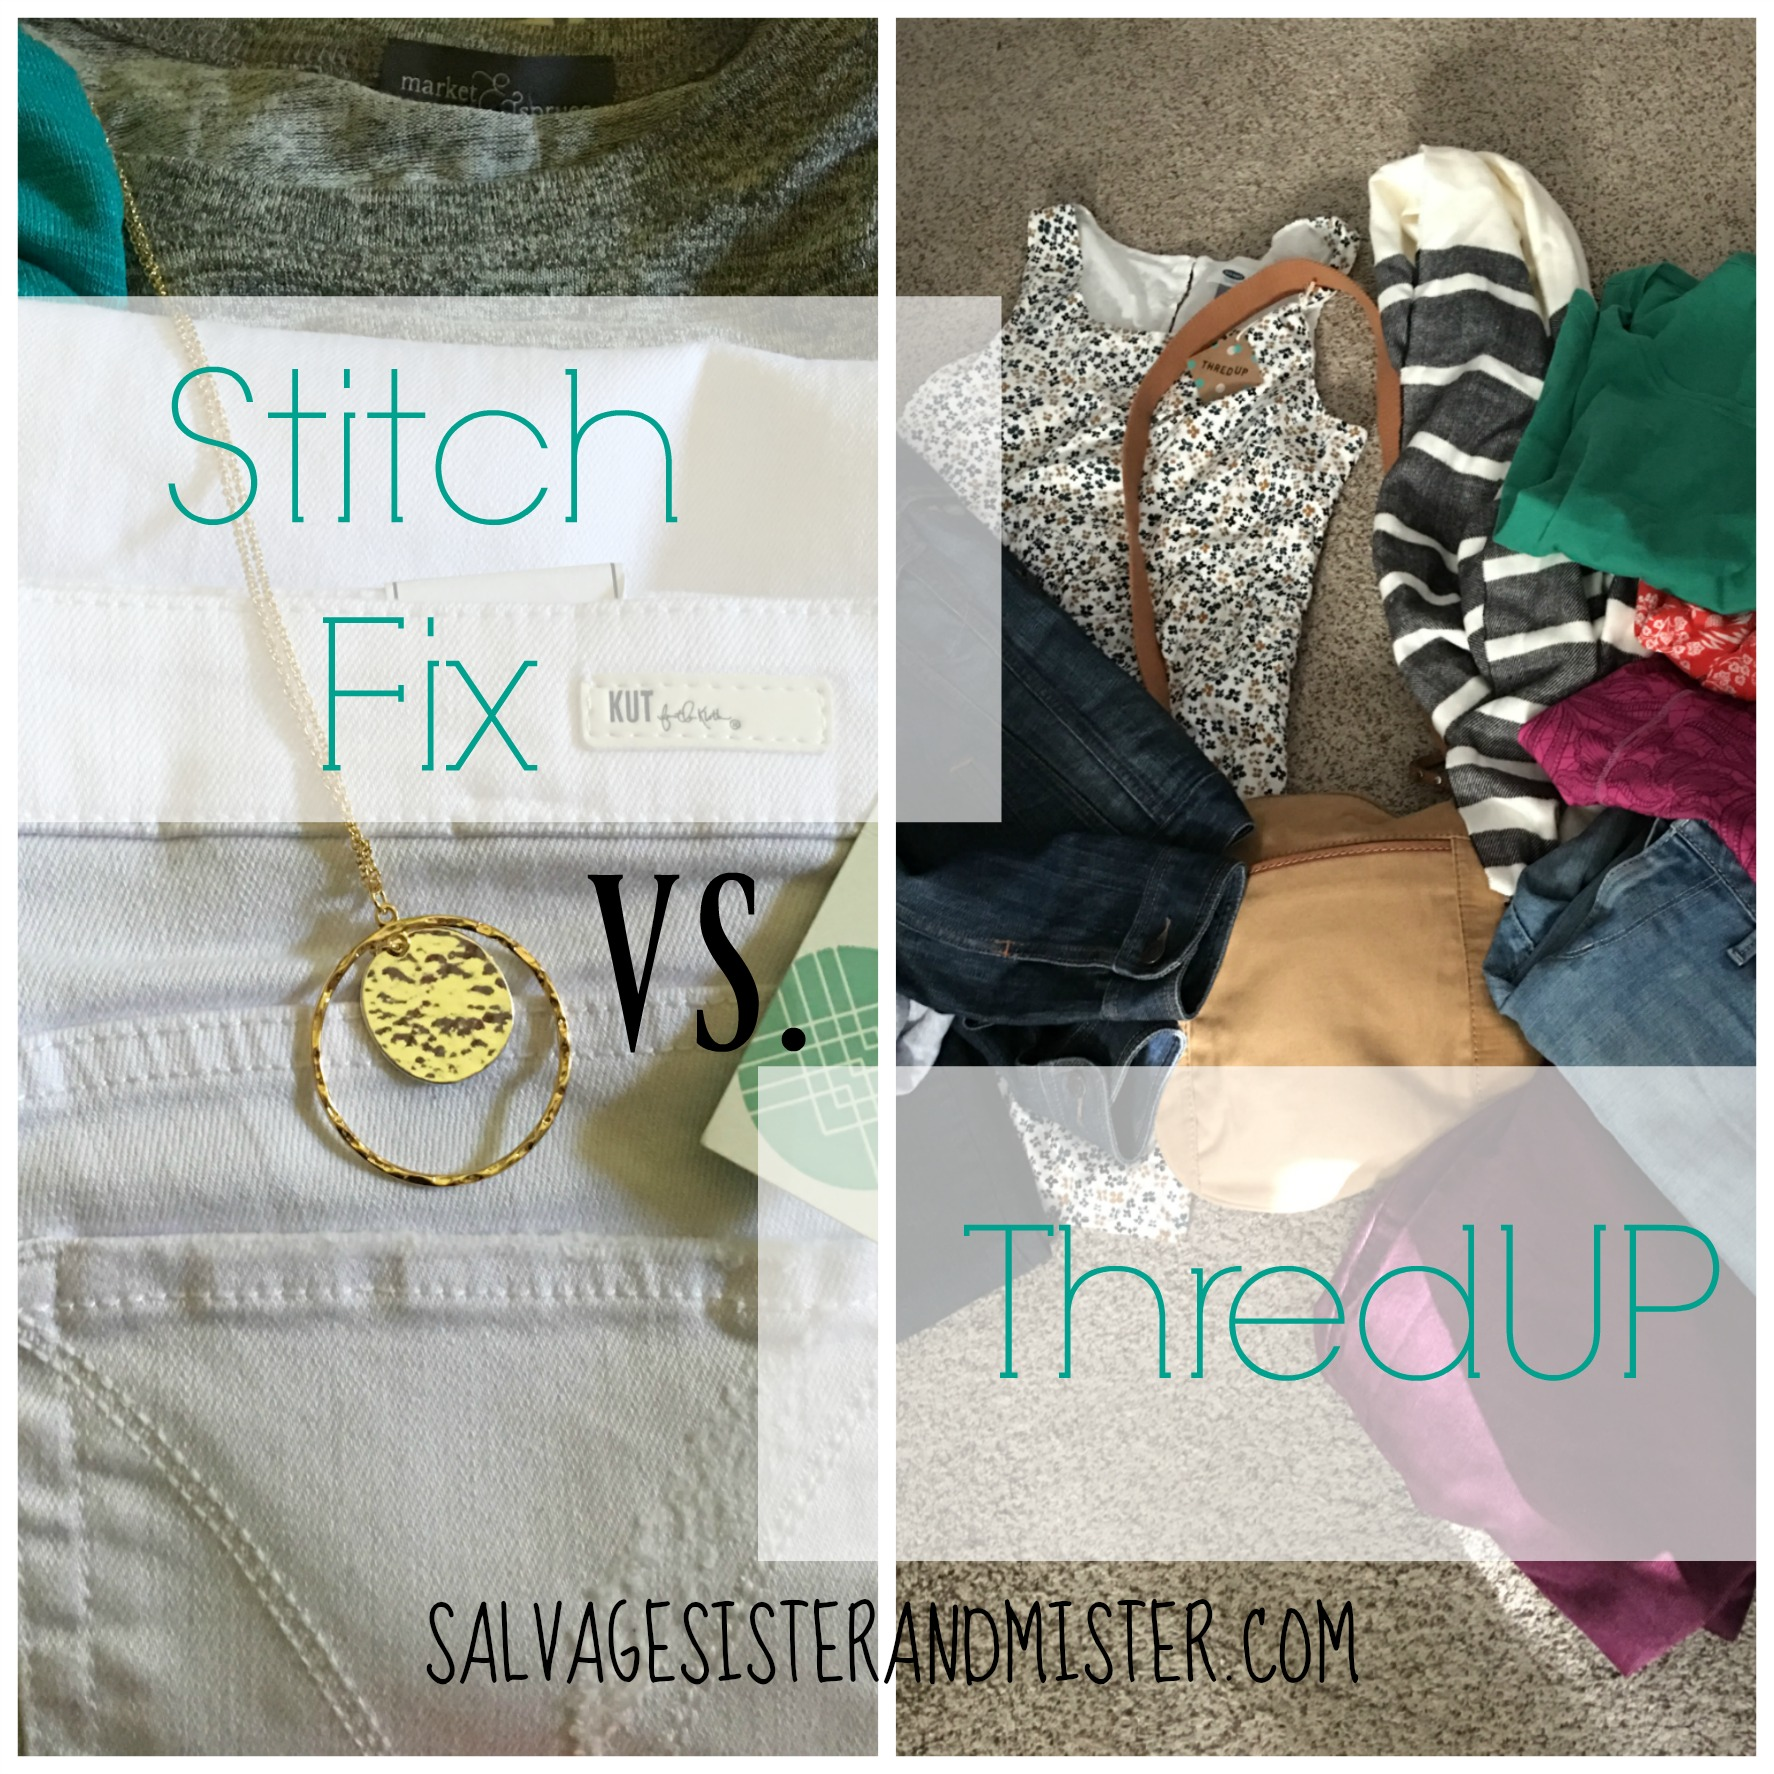 In the world of fashion, there are lots of options. I am comparing two services, stitch fix and thredup. Both clothing services offer brand names. Come find out the pros and cons of using both clothing store options. For fashionista or not?